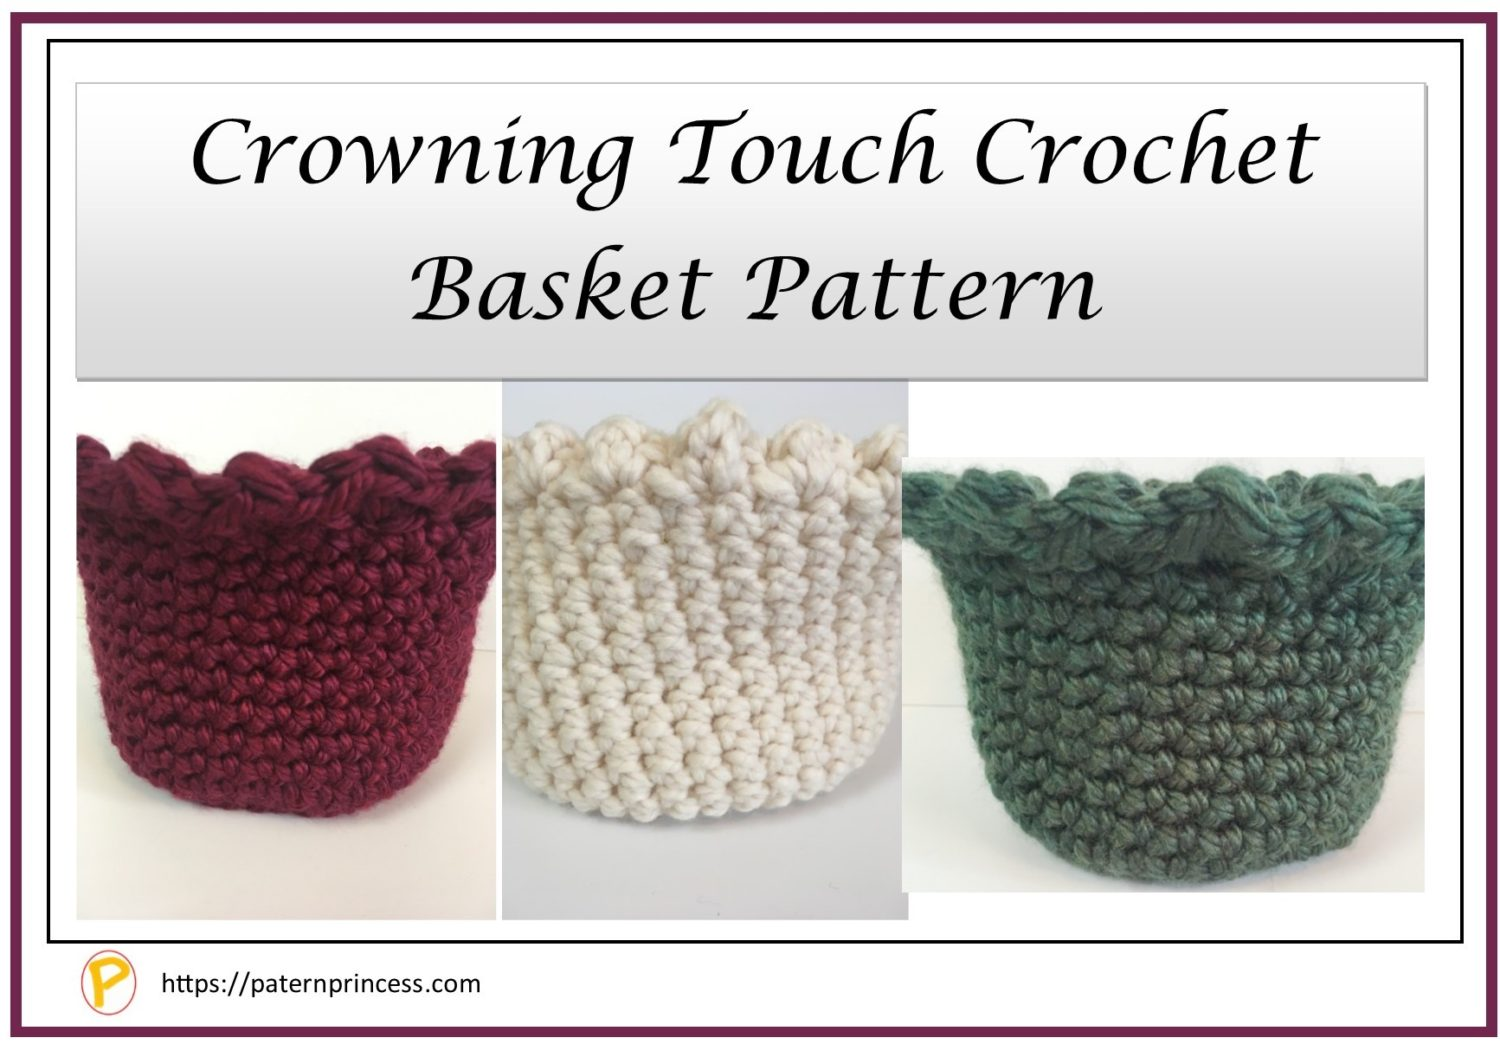 Crowning touch crochet basket patterns